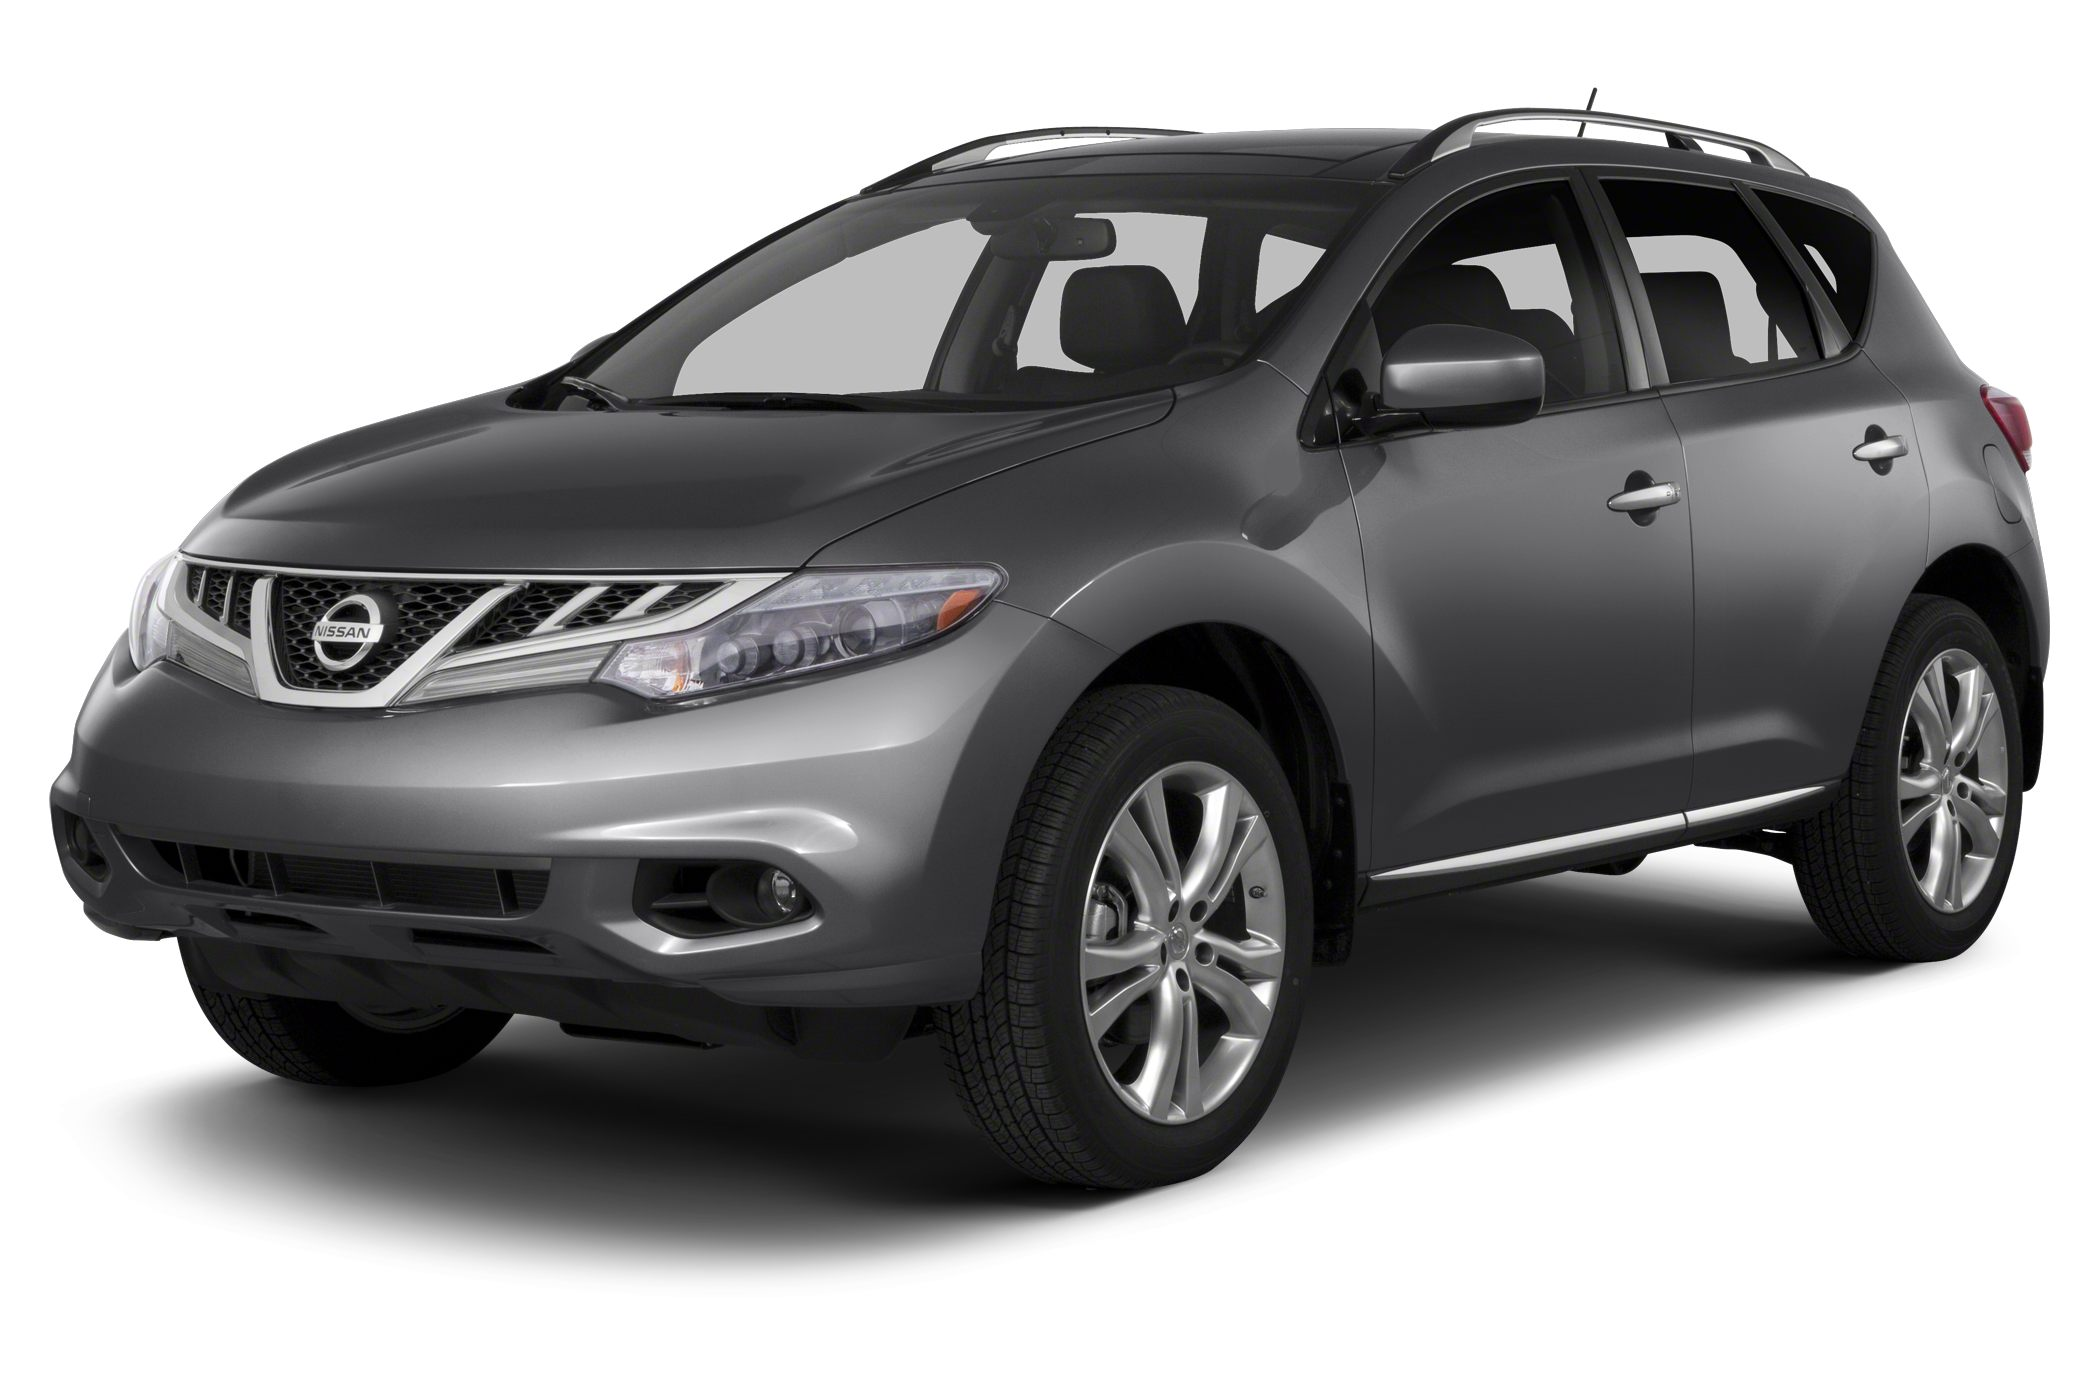 2013 Nissan Murano S SUV for sale in Hatfield for $21,999 with 13,740 miles.